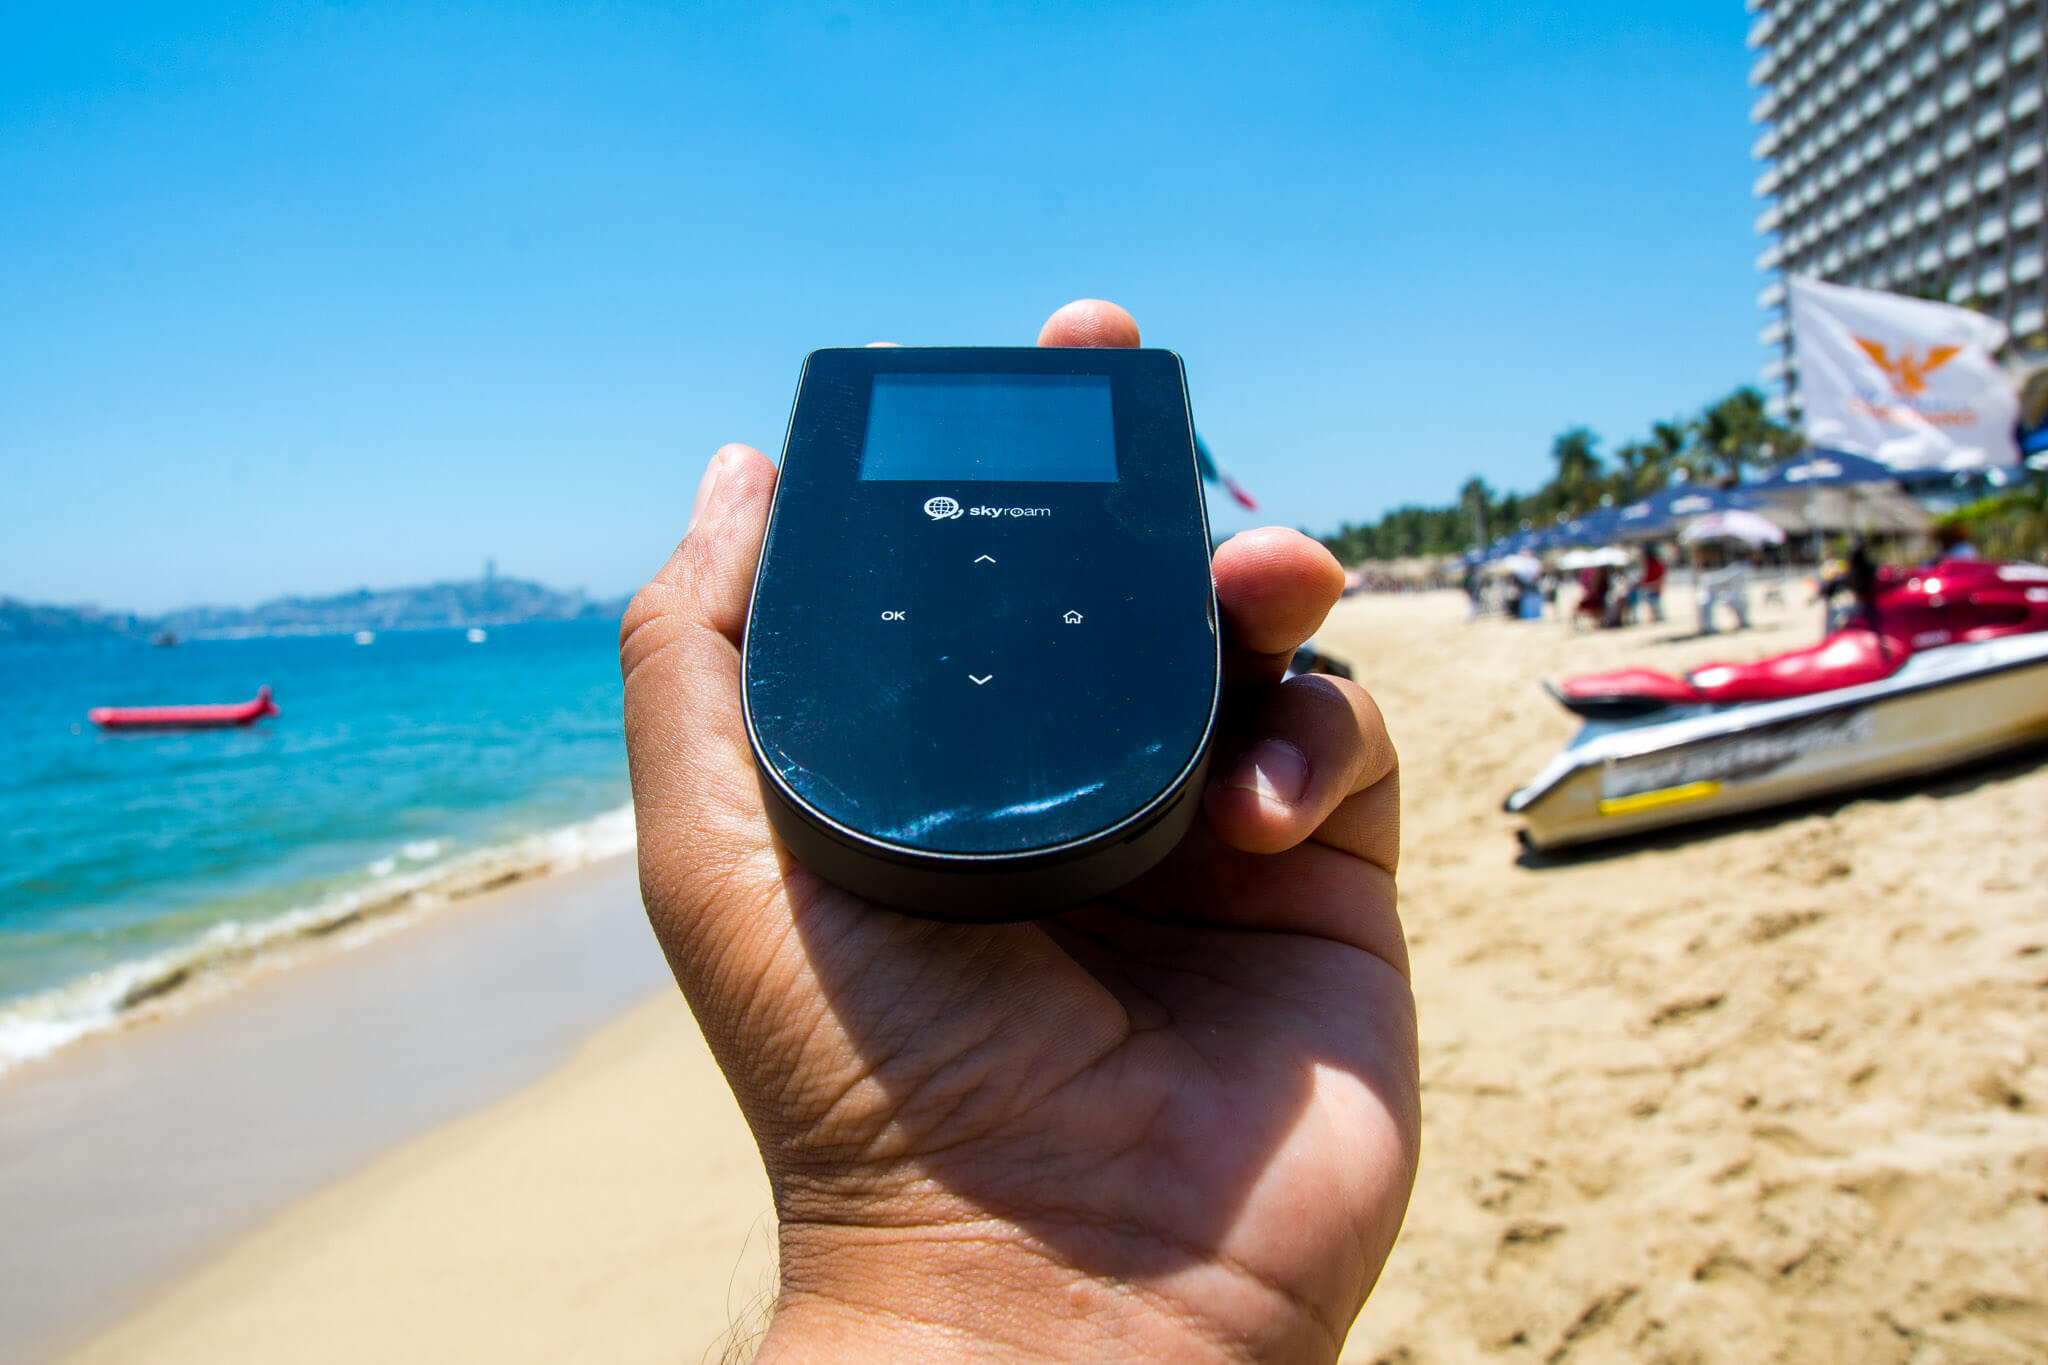 Trying out the TEP Wireless device in Acapulco, Mexico